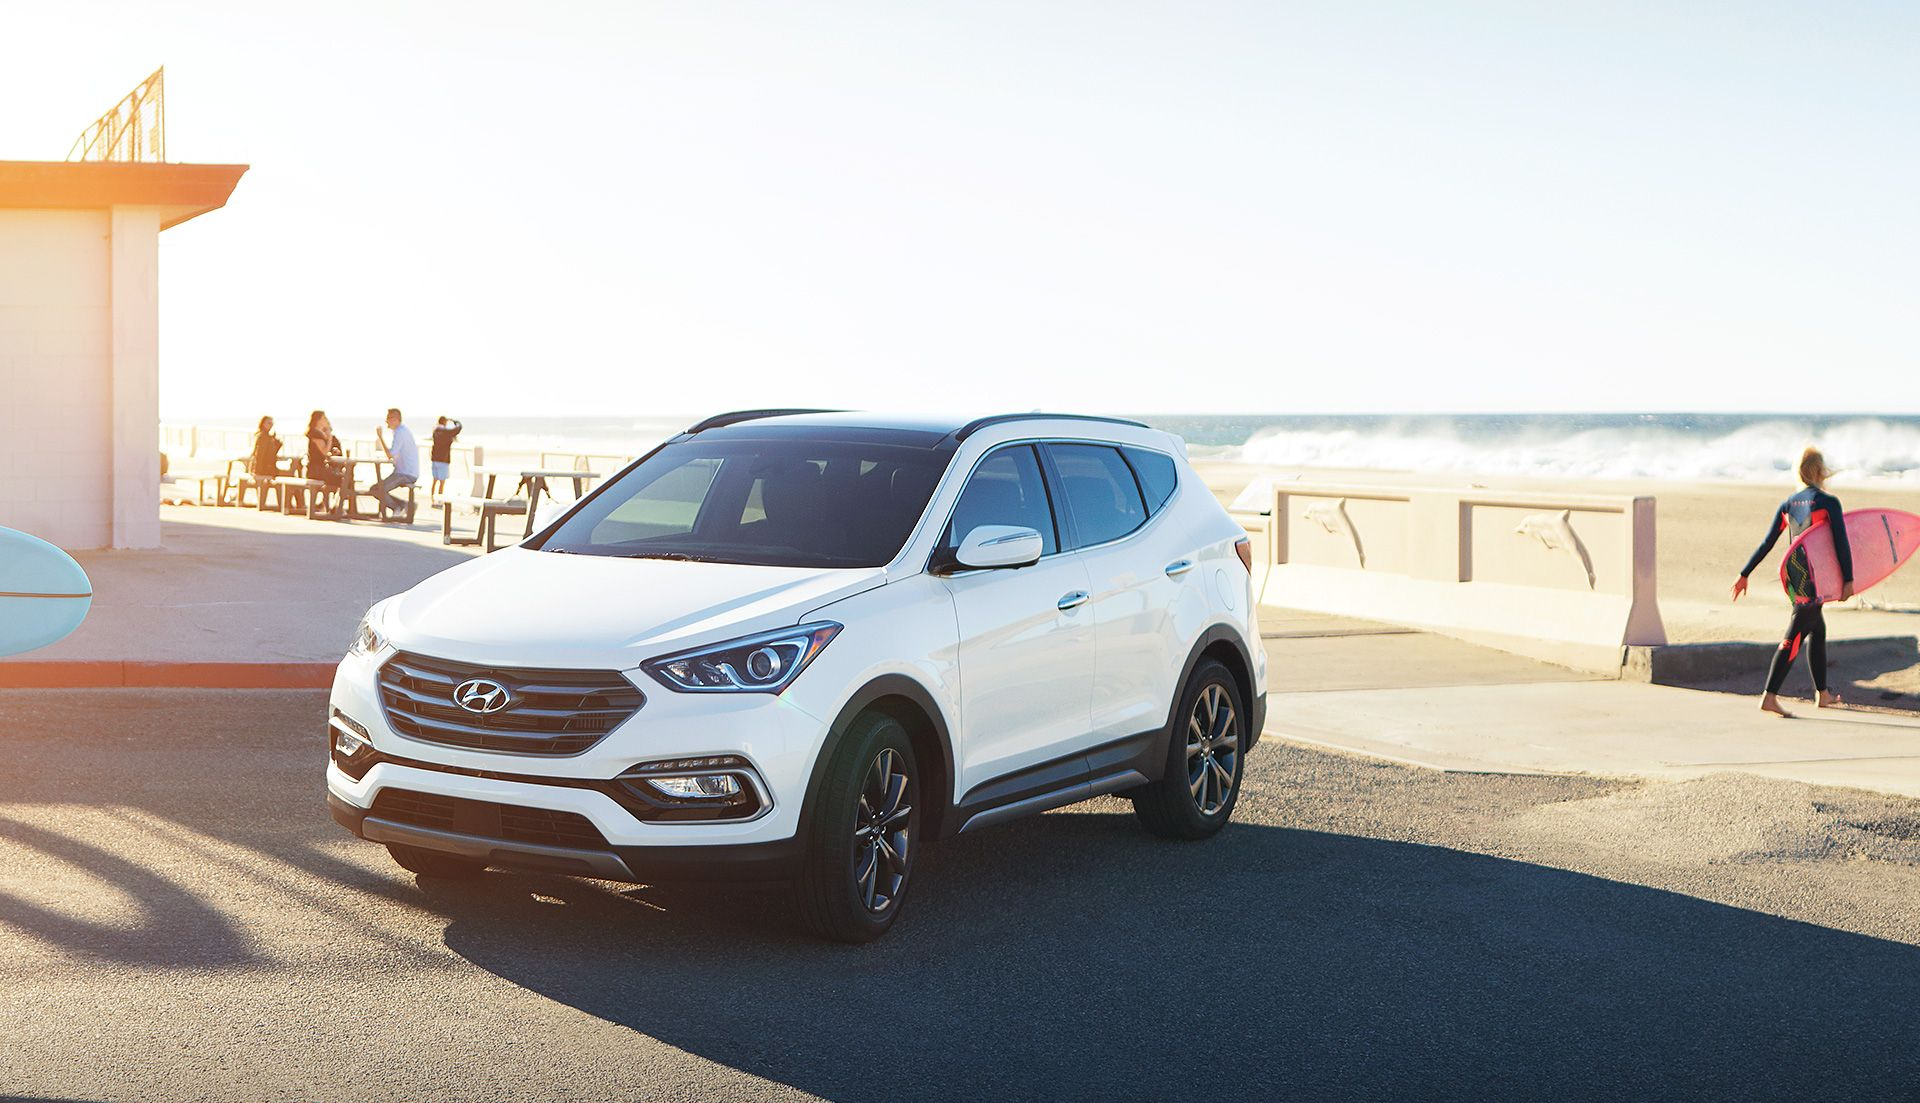 2017 Hyundai Santa Fe Sport for Sale near Washington, DC